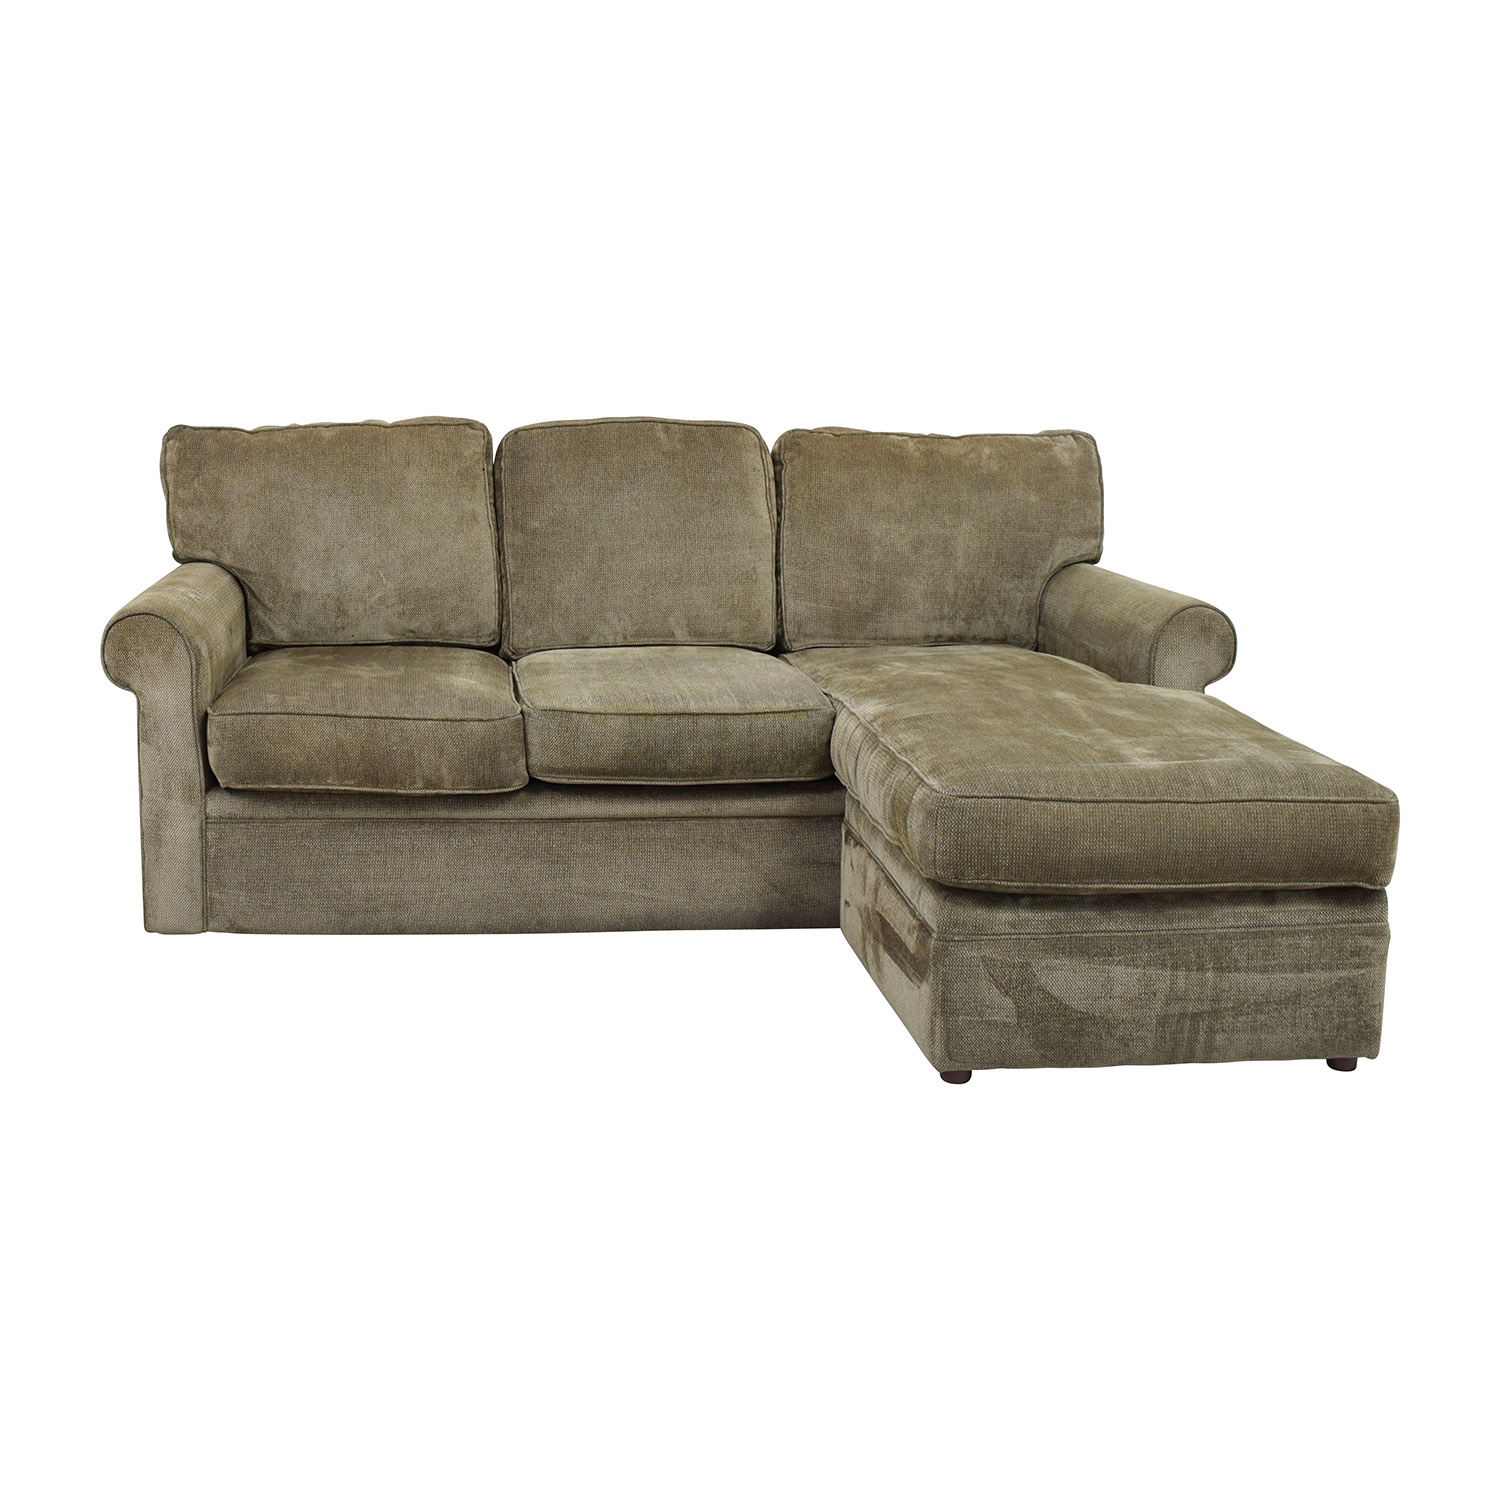 shop Rowe Furniture Green Sectional with Curved Arms Rowe Furniture Sofas